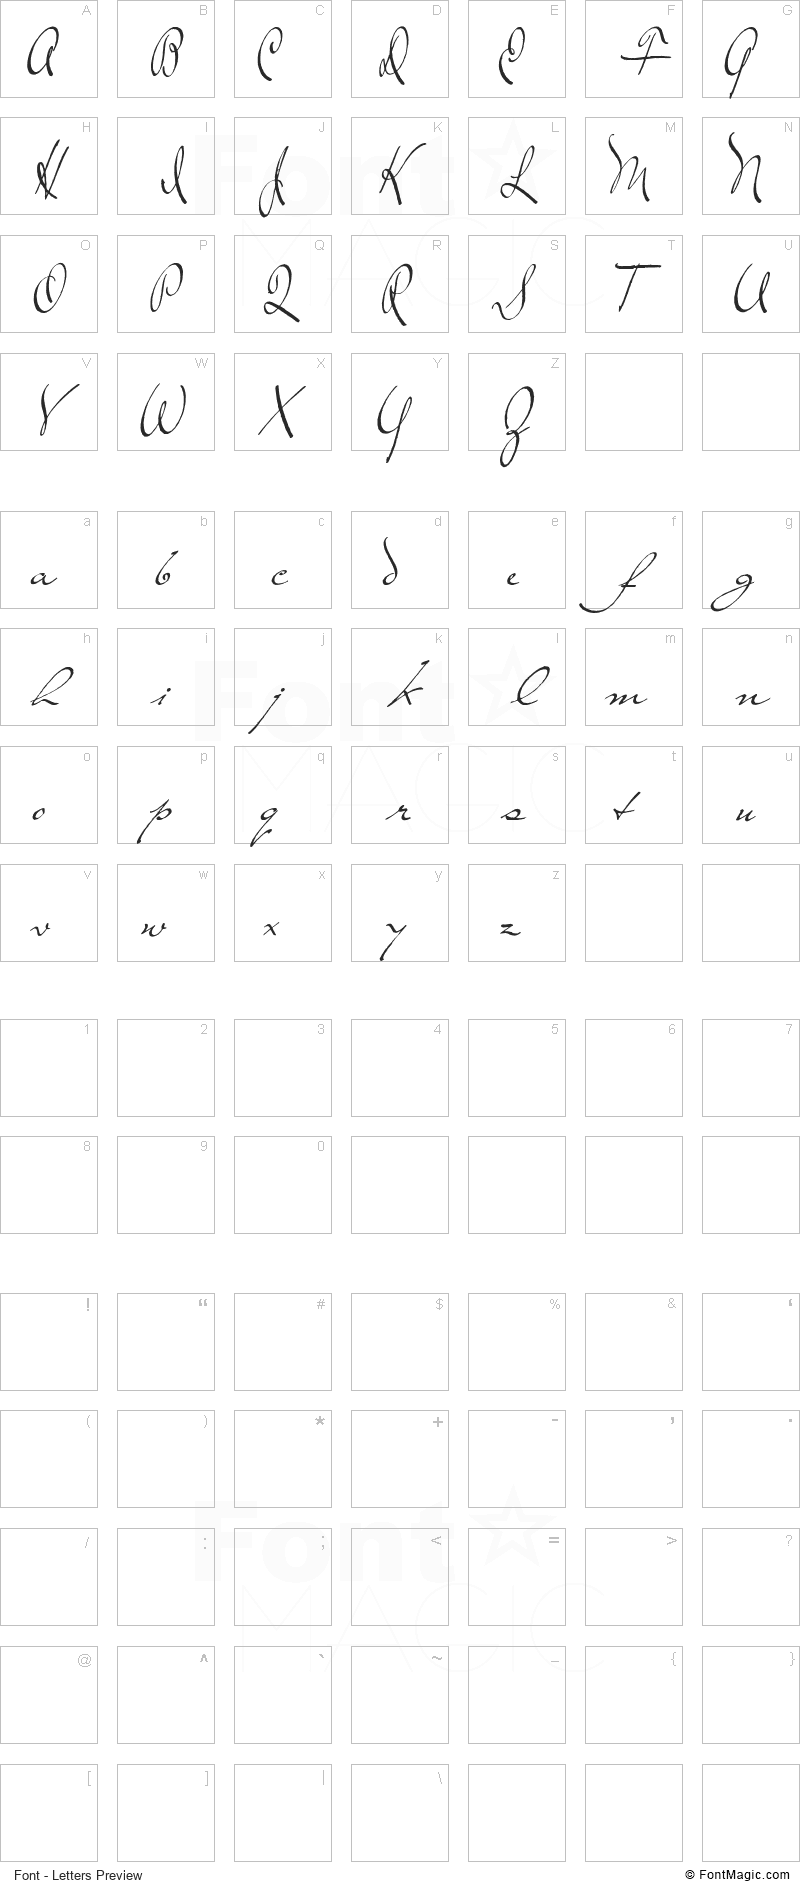 The Loyalist Font - All Latters Preview Chart